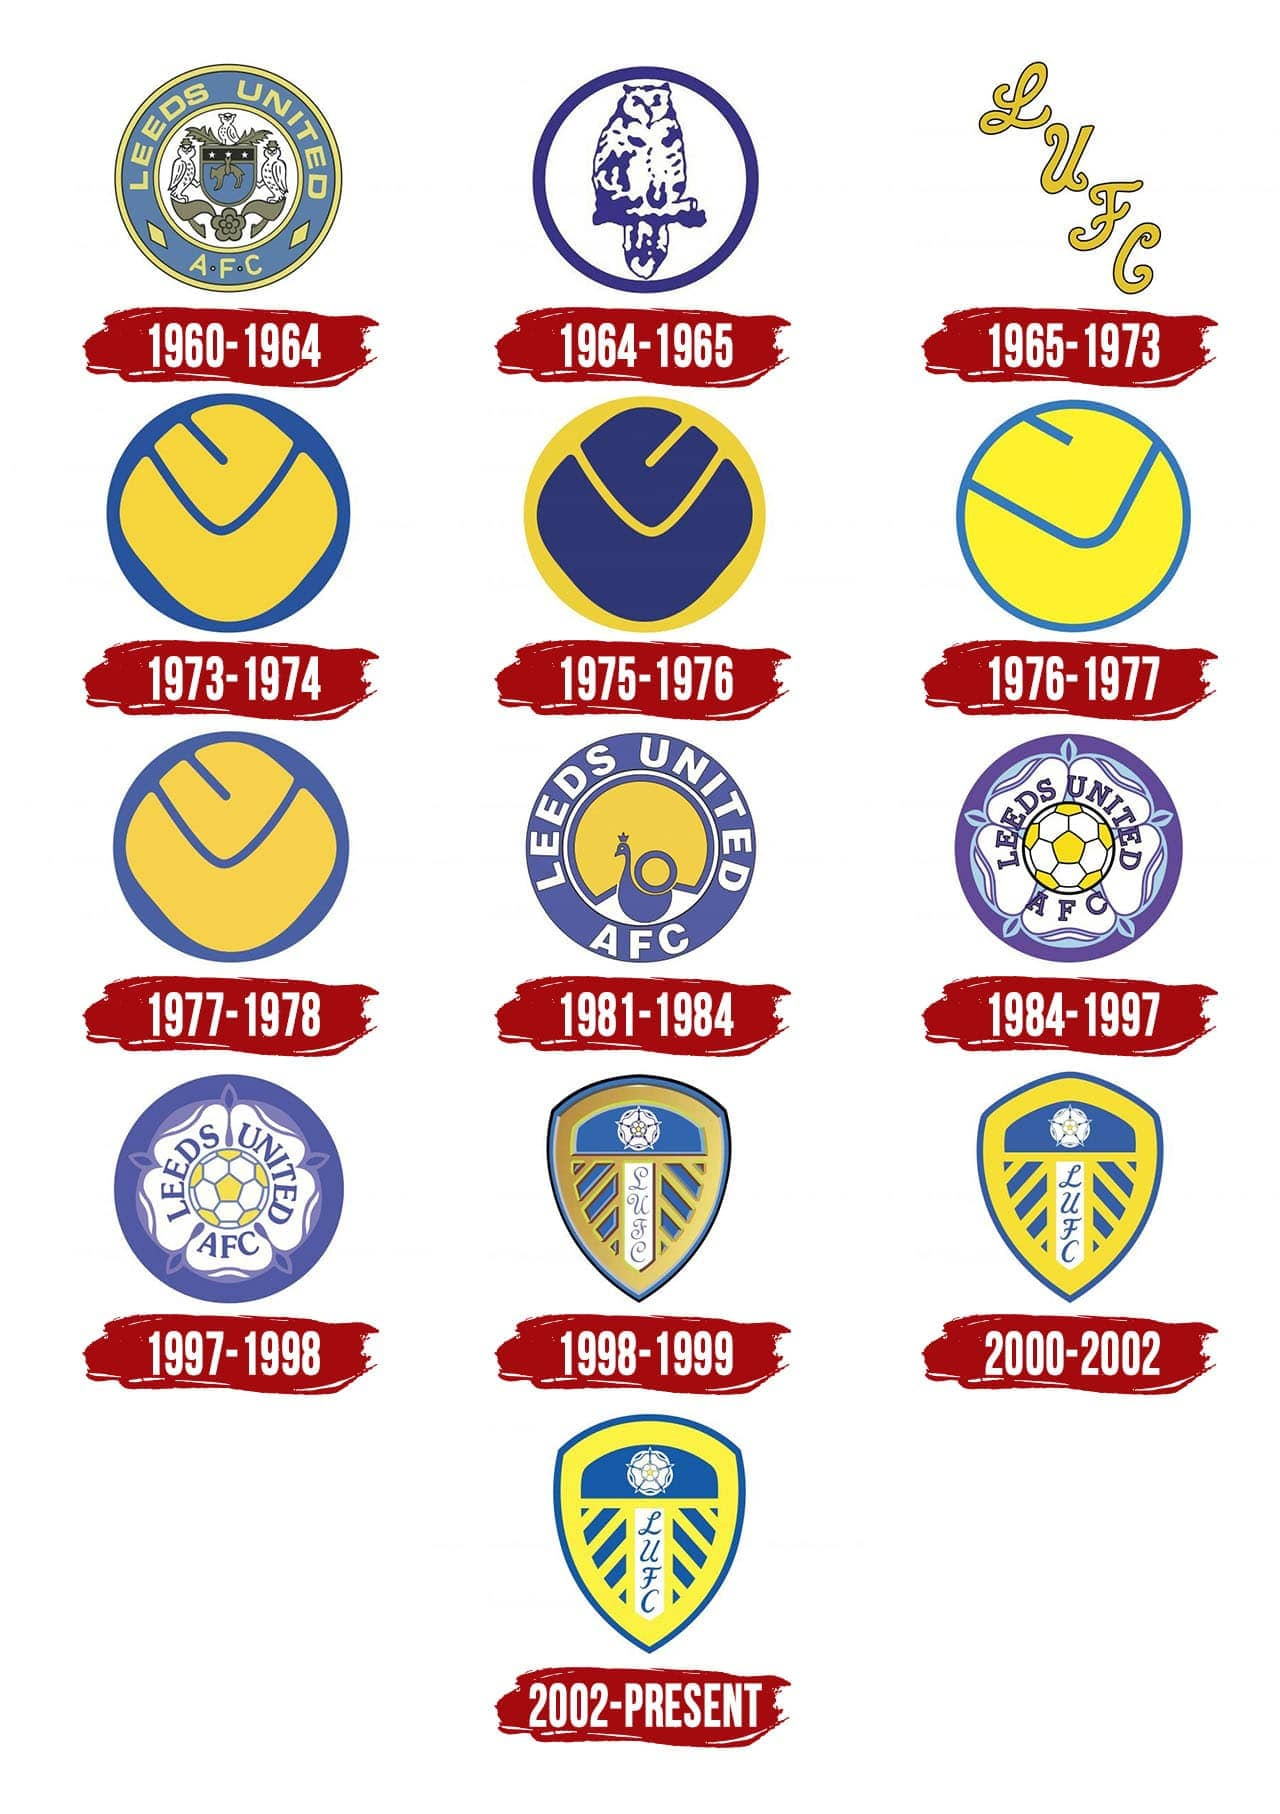 Leeds United Logo The Most Famous Brands And Company Logos In The World